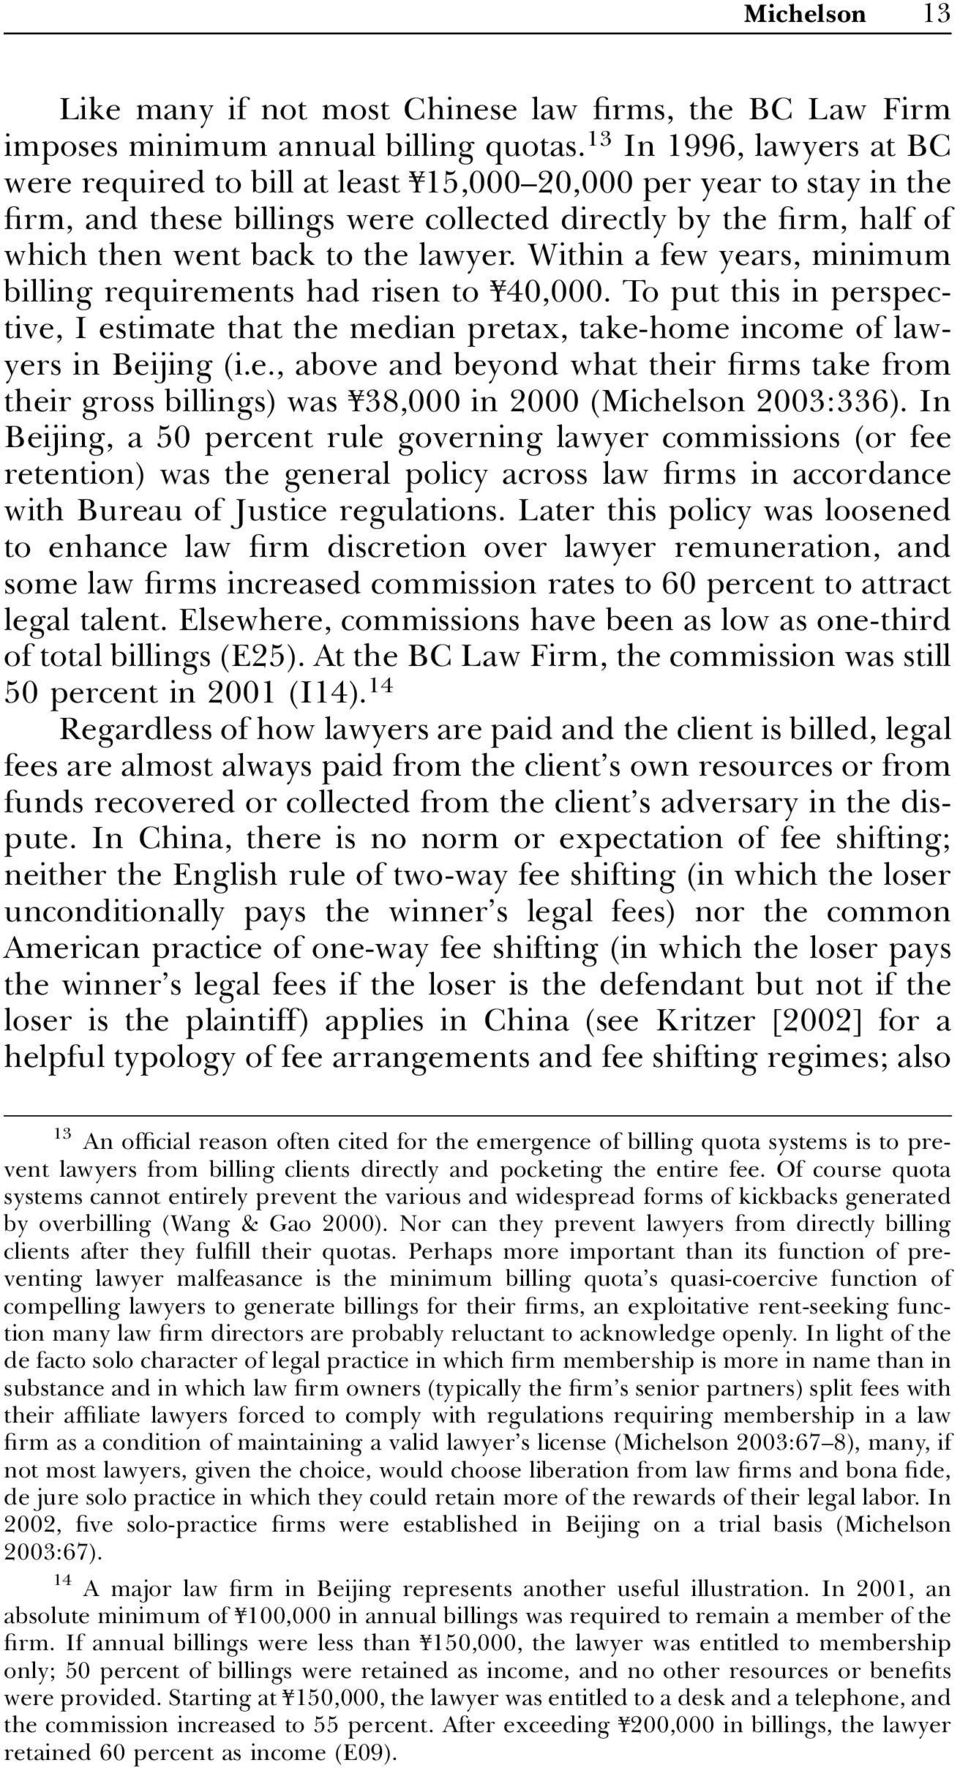 lawyer. Within a few years, minimum billing requirements had risen to f40,000. To put this in perspective, I estimate that the median pretax, take-home income of lawyers in Beijing (i.e., above and beyond what their firms take from their gross billings) was f38,000 in 2000 (Michelson 2003:336).